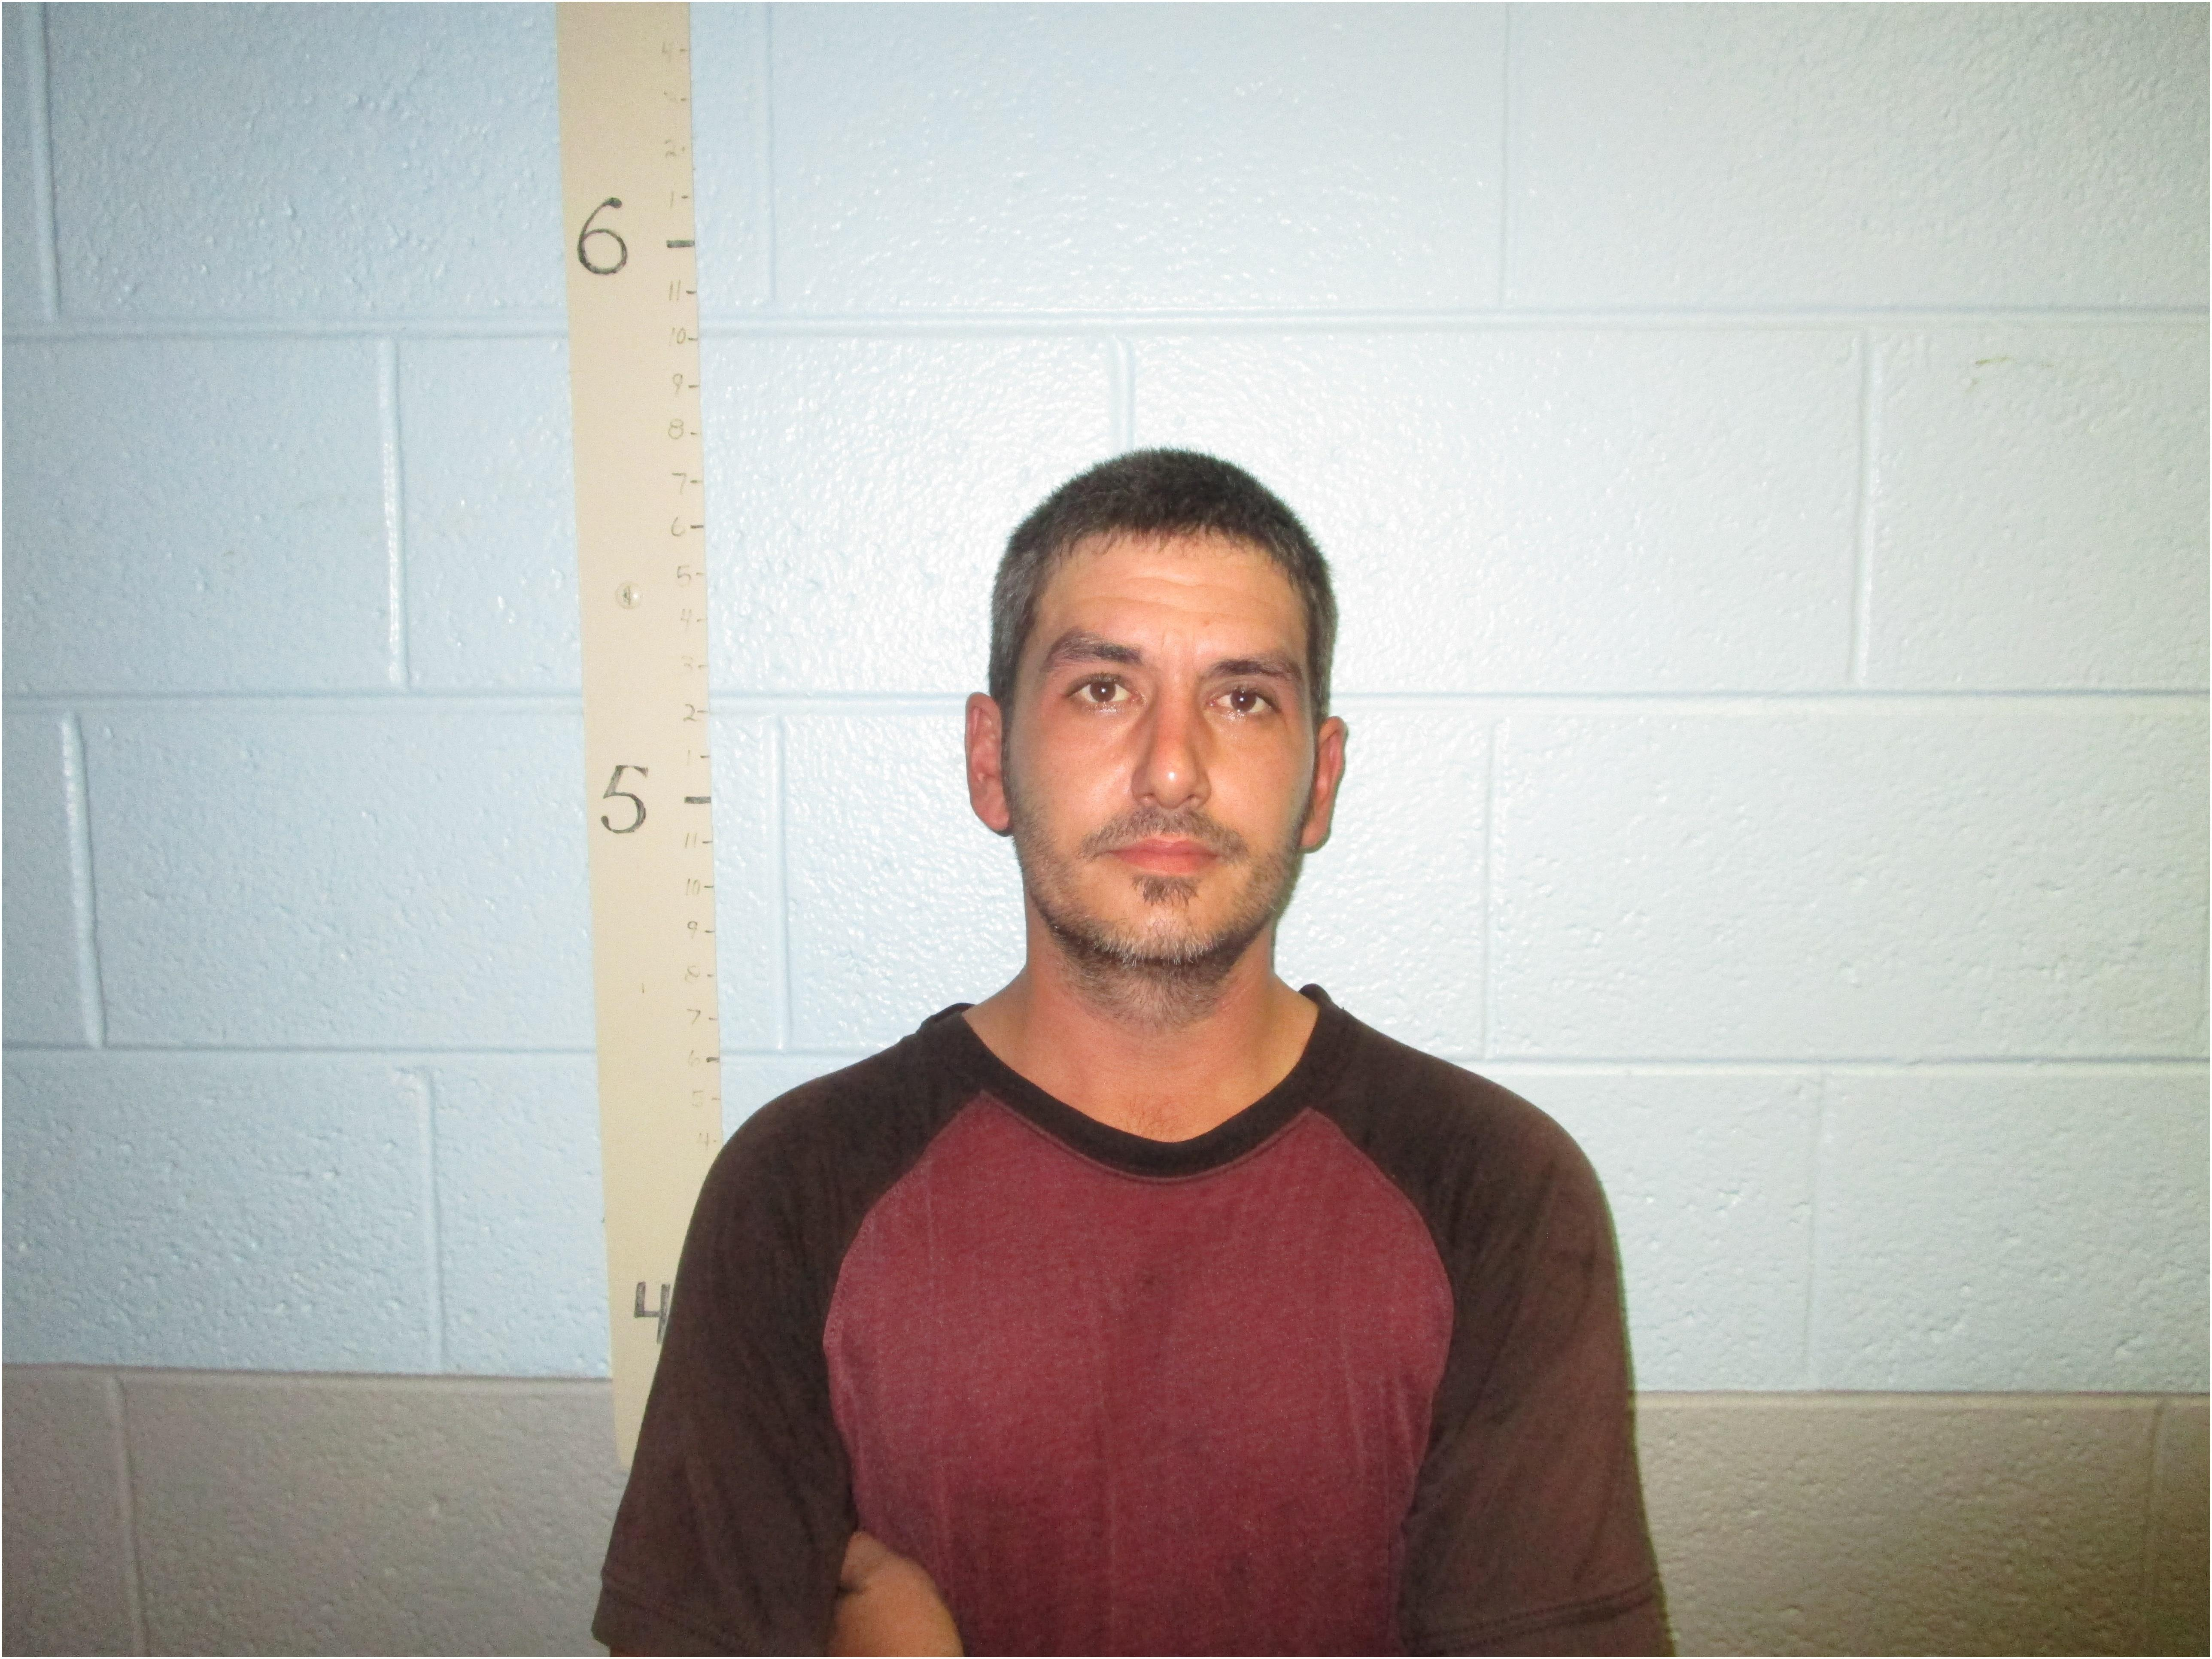 John Tiffany, 32, and Brianna Rupe, 21, were arraigned Monday on felony charges.